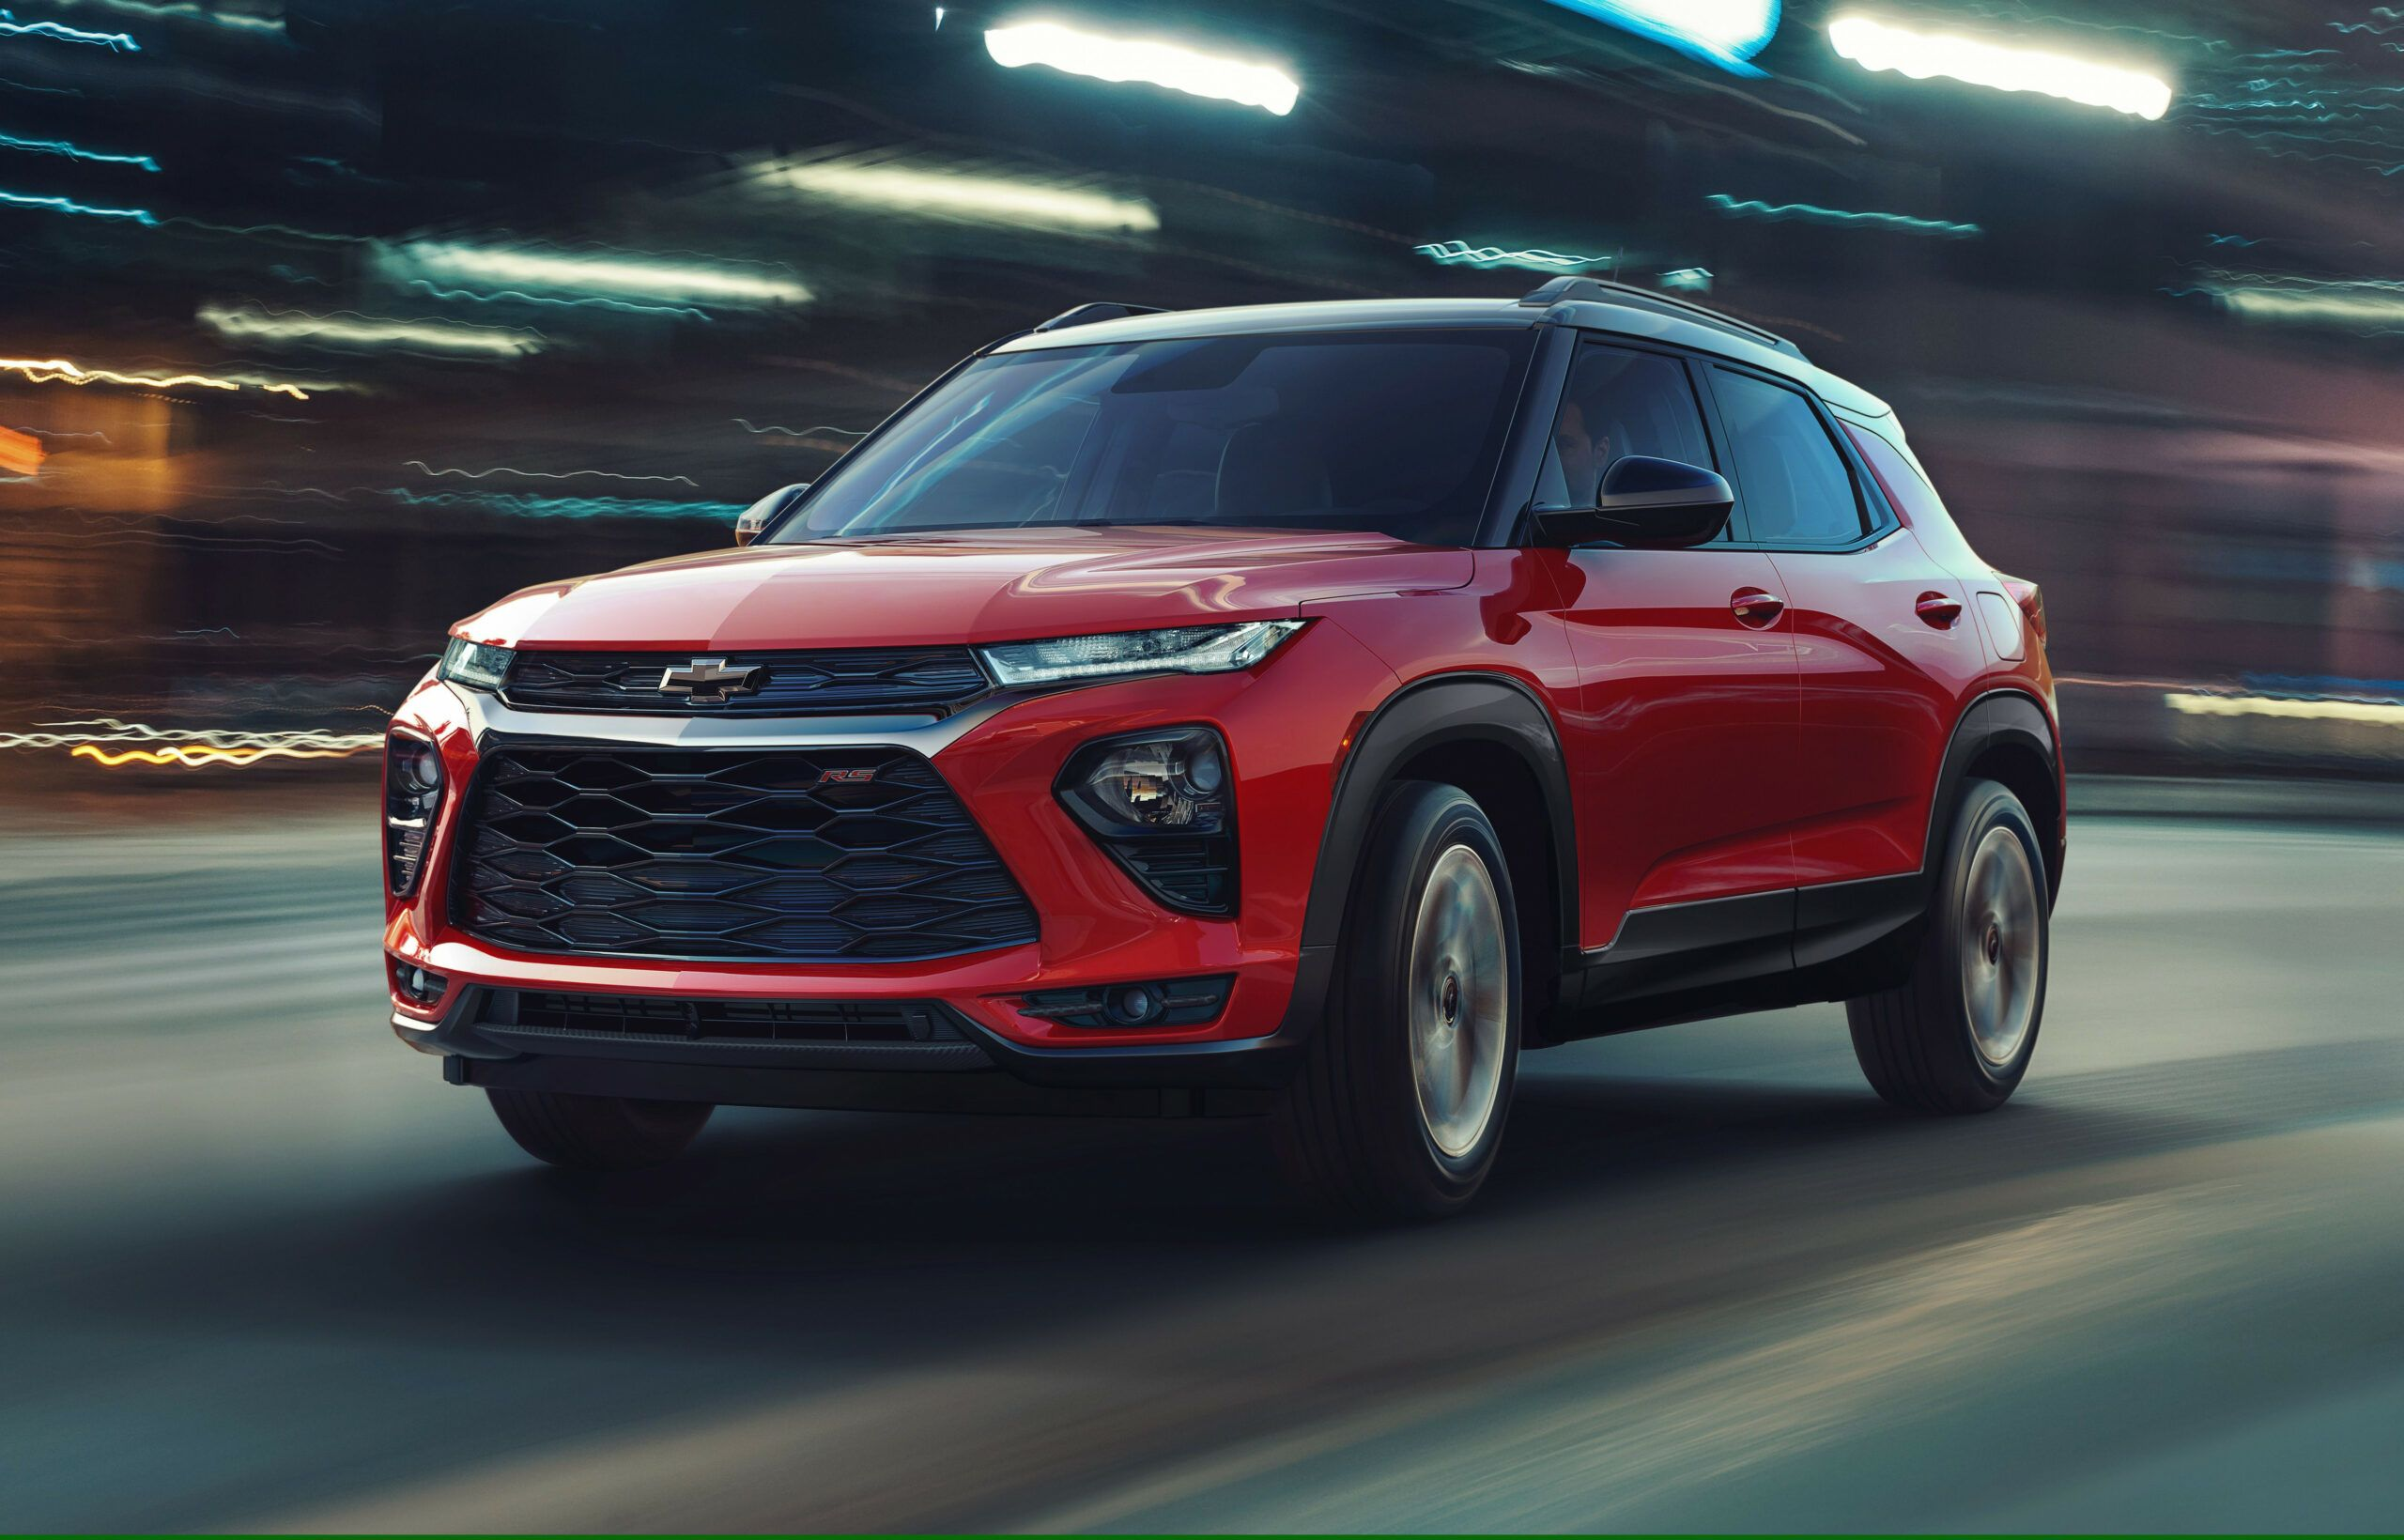 2021 Chevrolet Trax Concept And Review In 2020 Chevrolet Trailblazer Chevy Trailblazer Chevrolet Trax